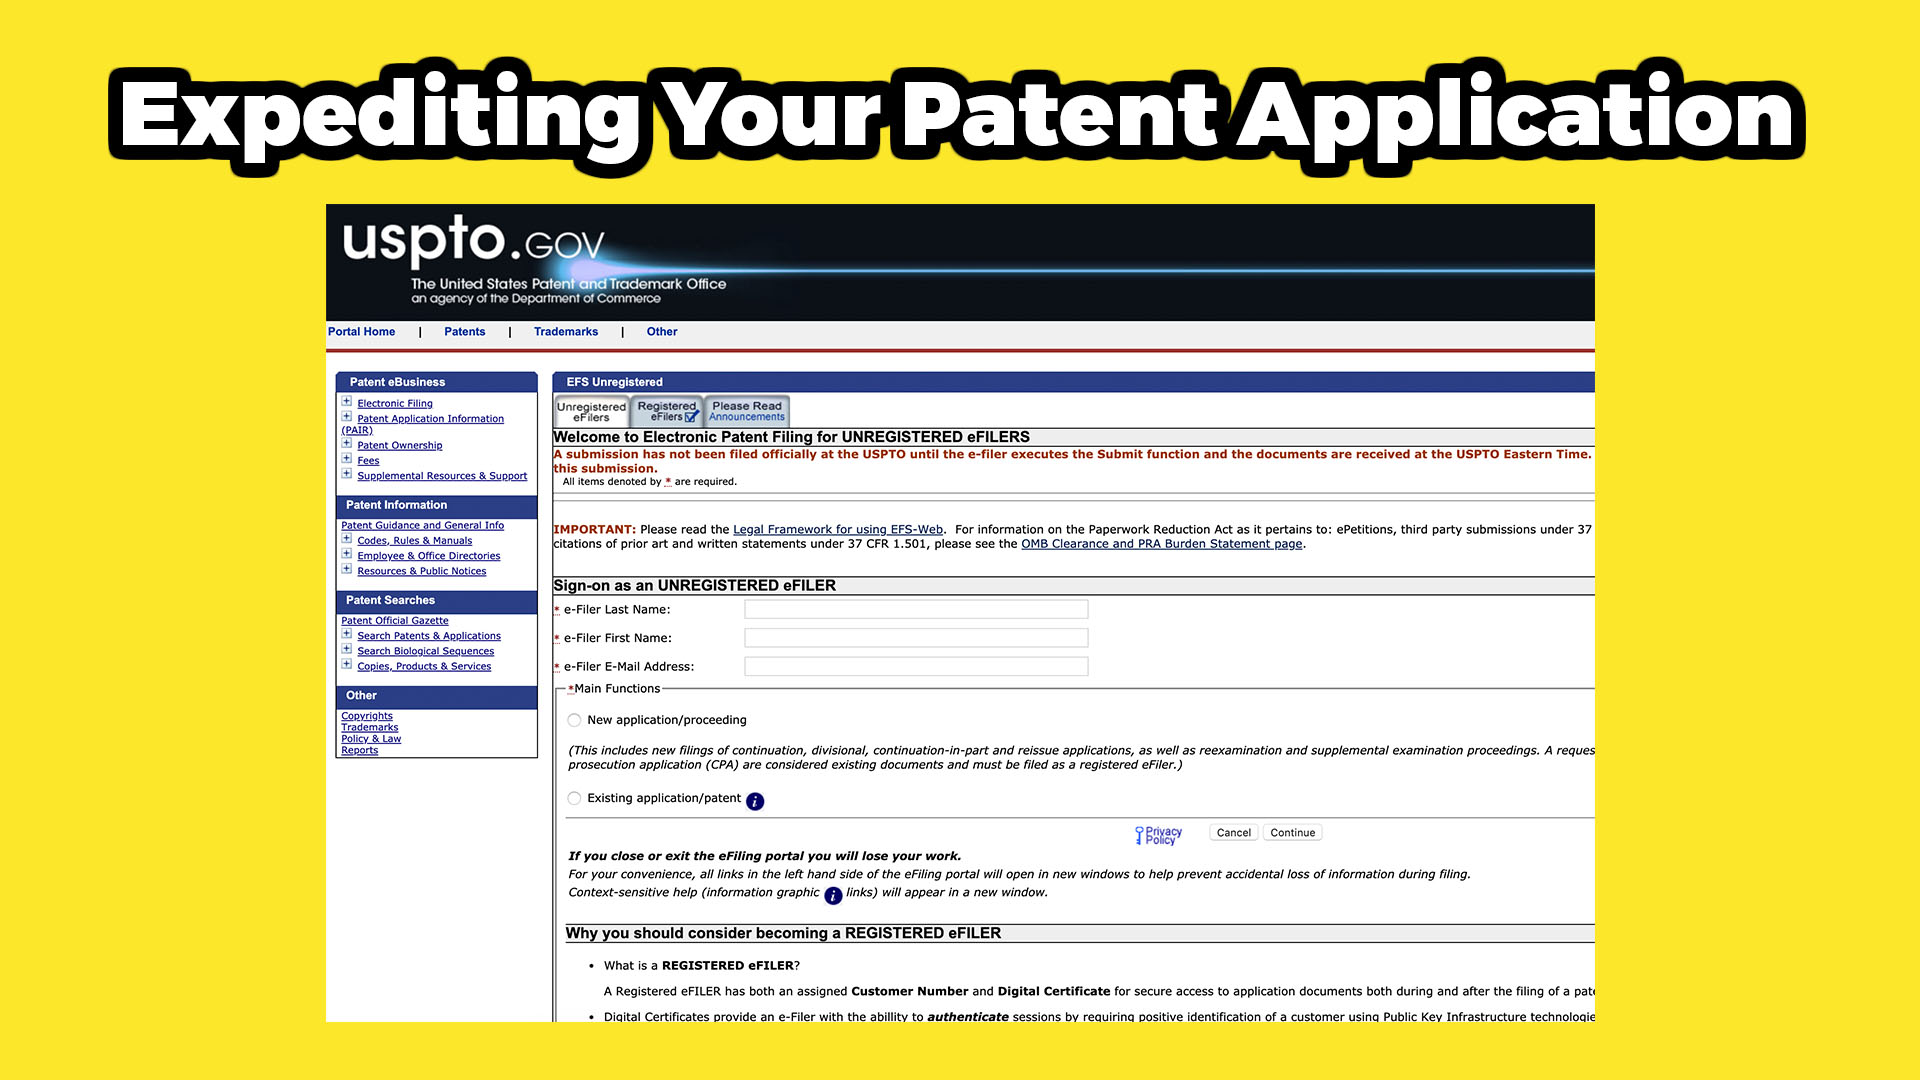 How to expedite a patent application?